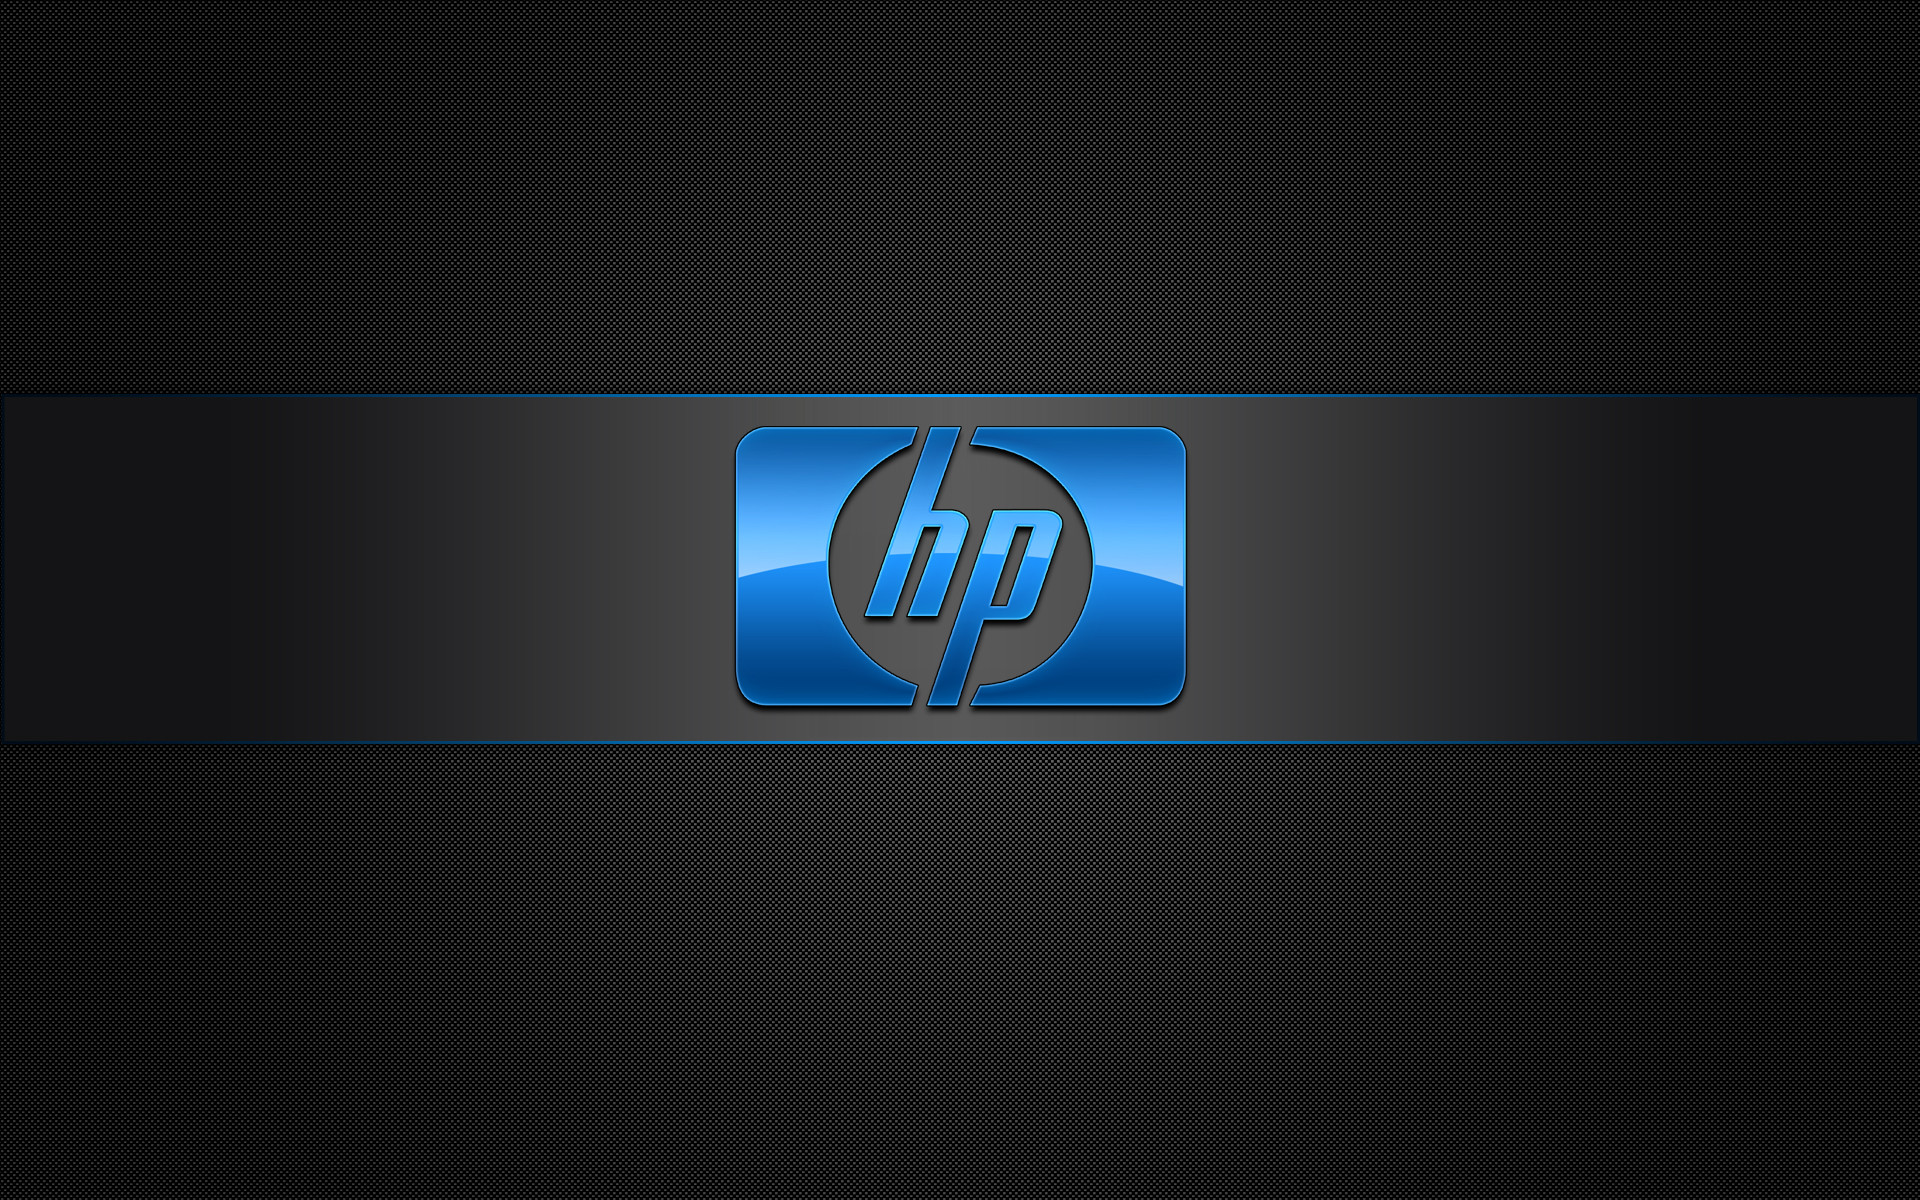 hp wallpaper hd (66+ pictures)